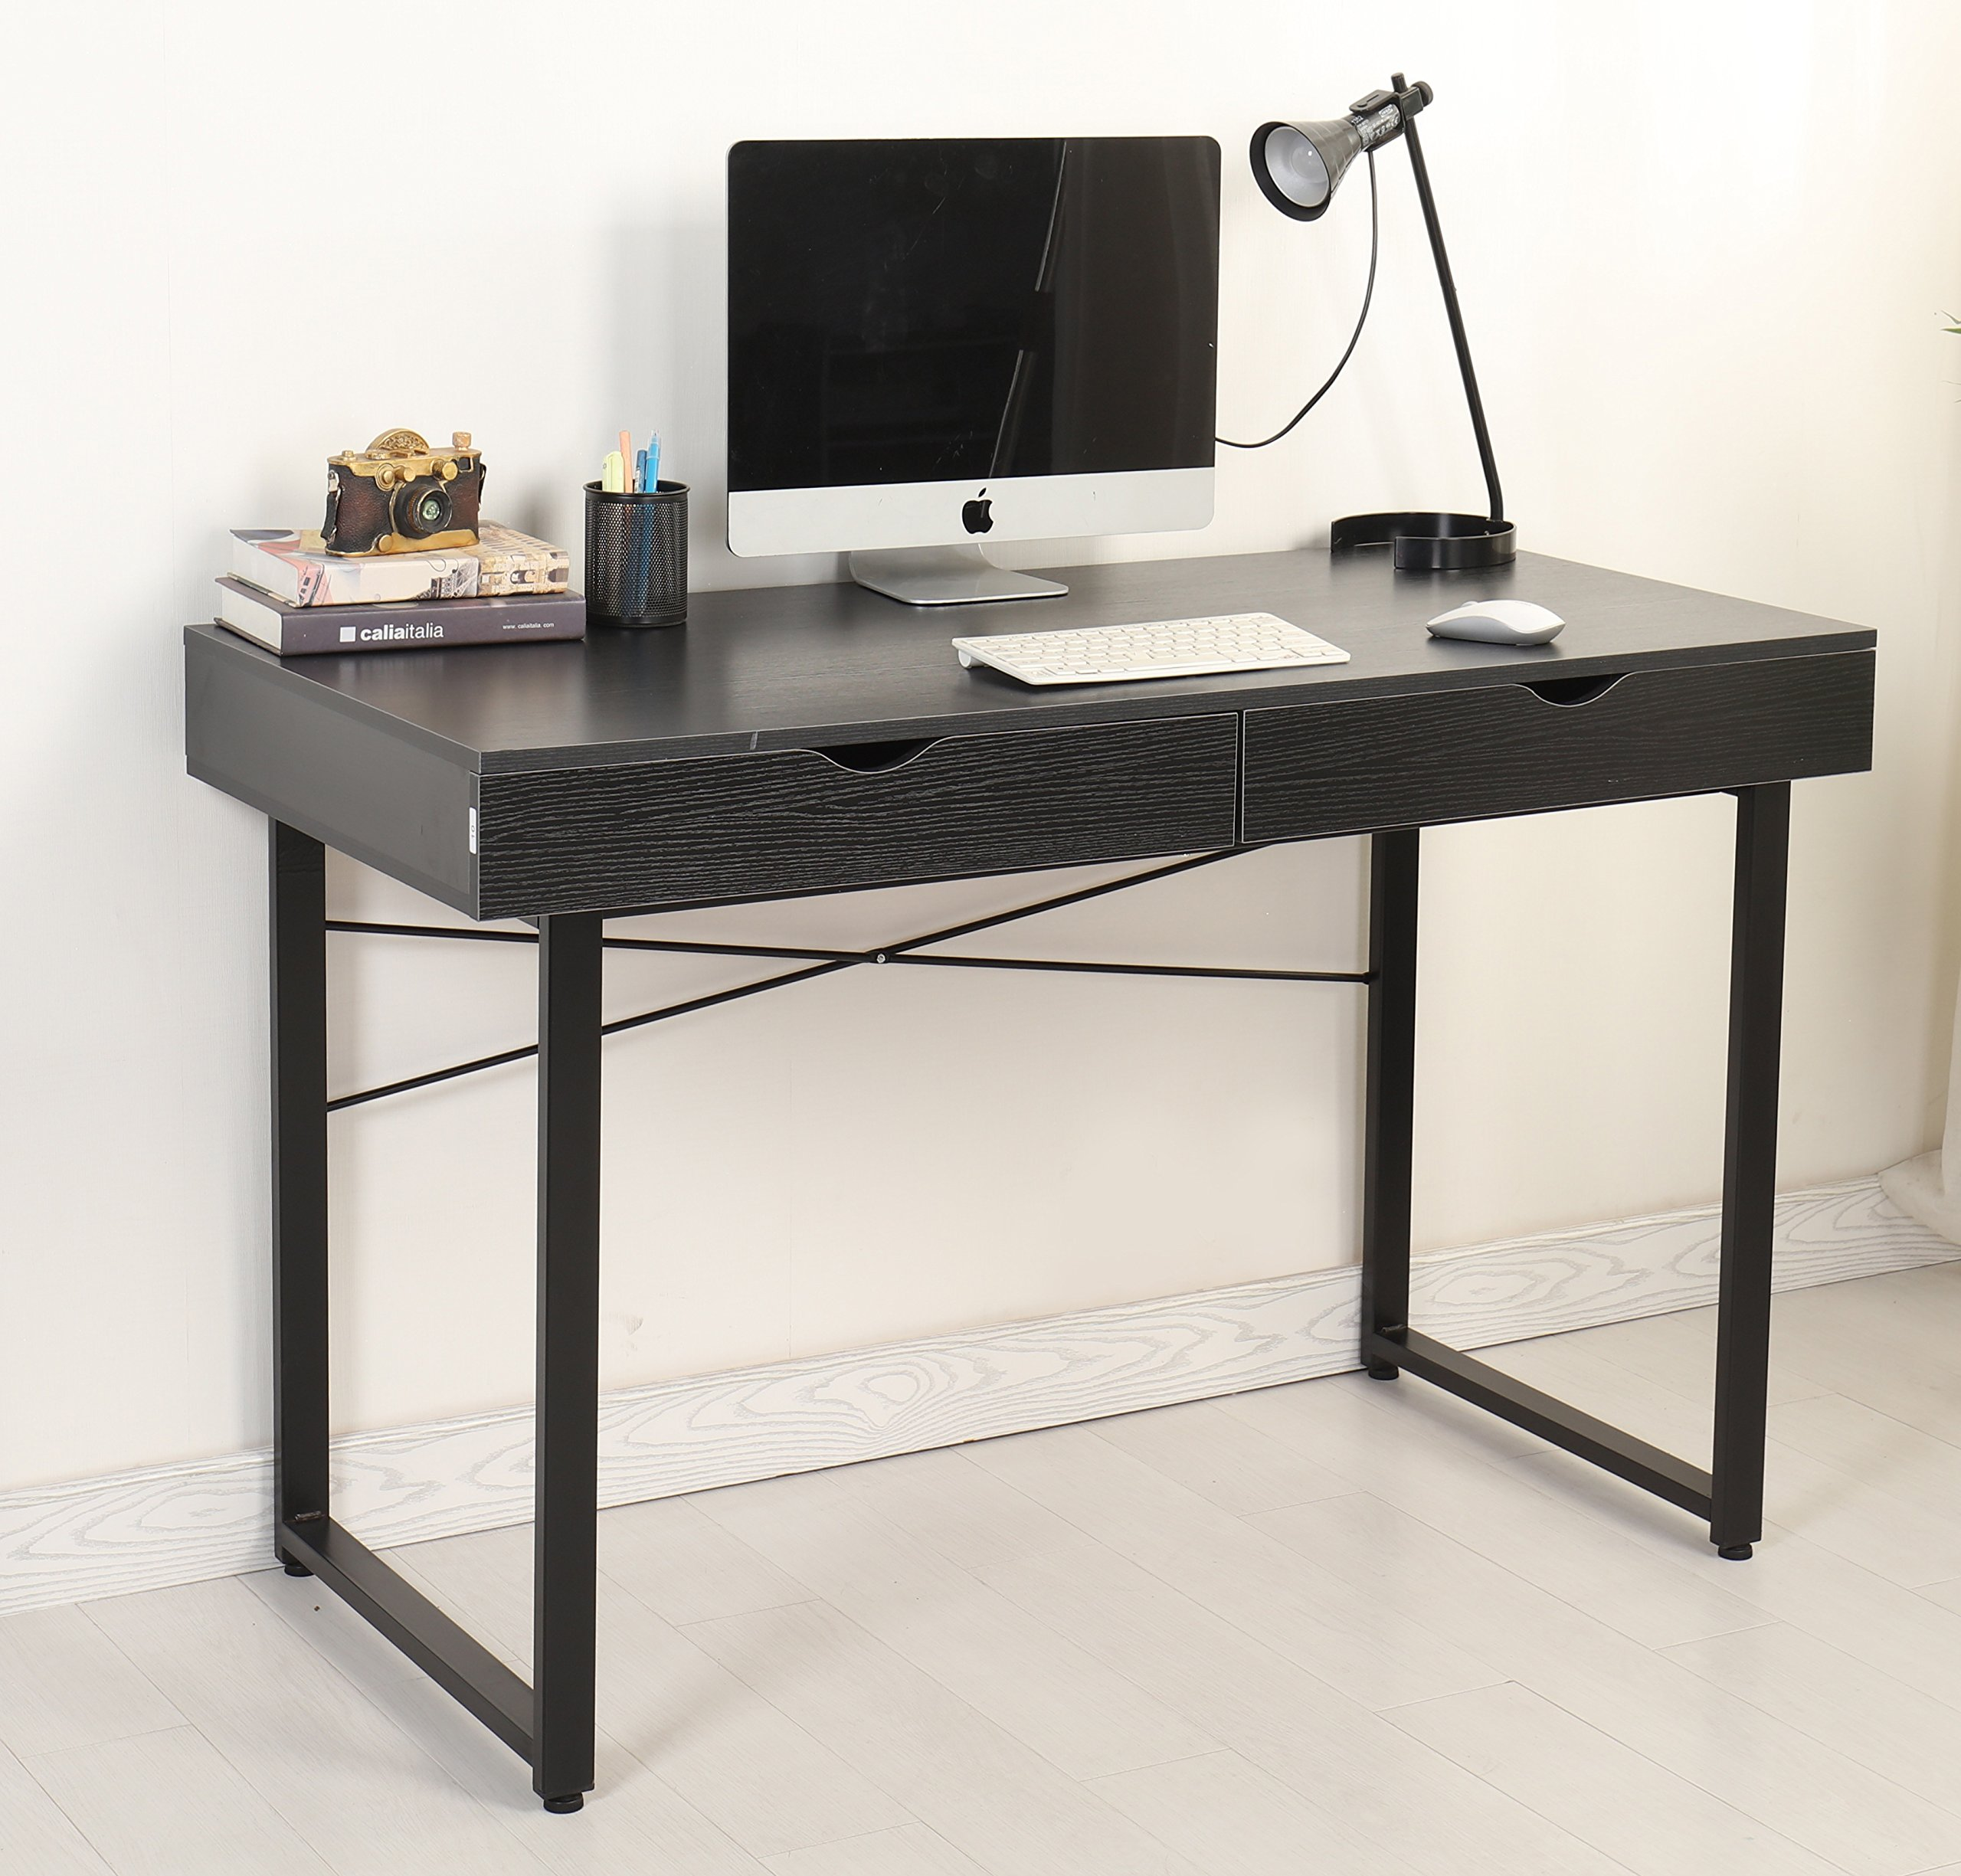 Mr Ironstone Modern Computer Desk 47'' PC Laptop Study Writing Table Multipurpose Workstation for Home Office Computer Table with 2 Drawers, Leg Reinforcement, Black